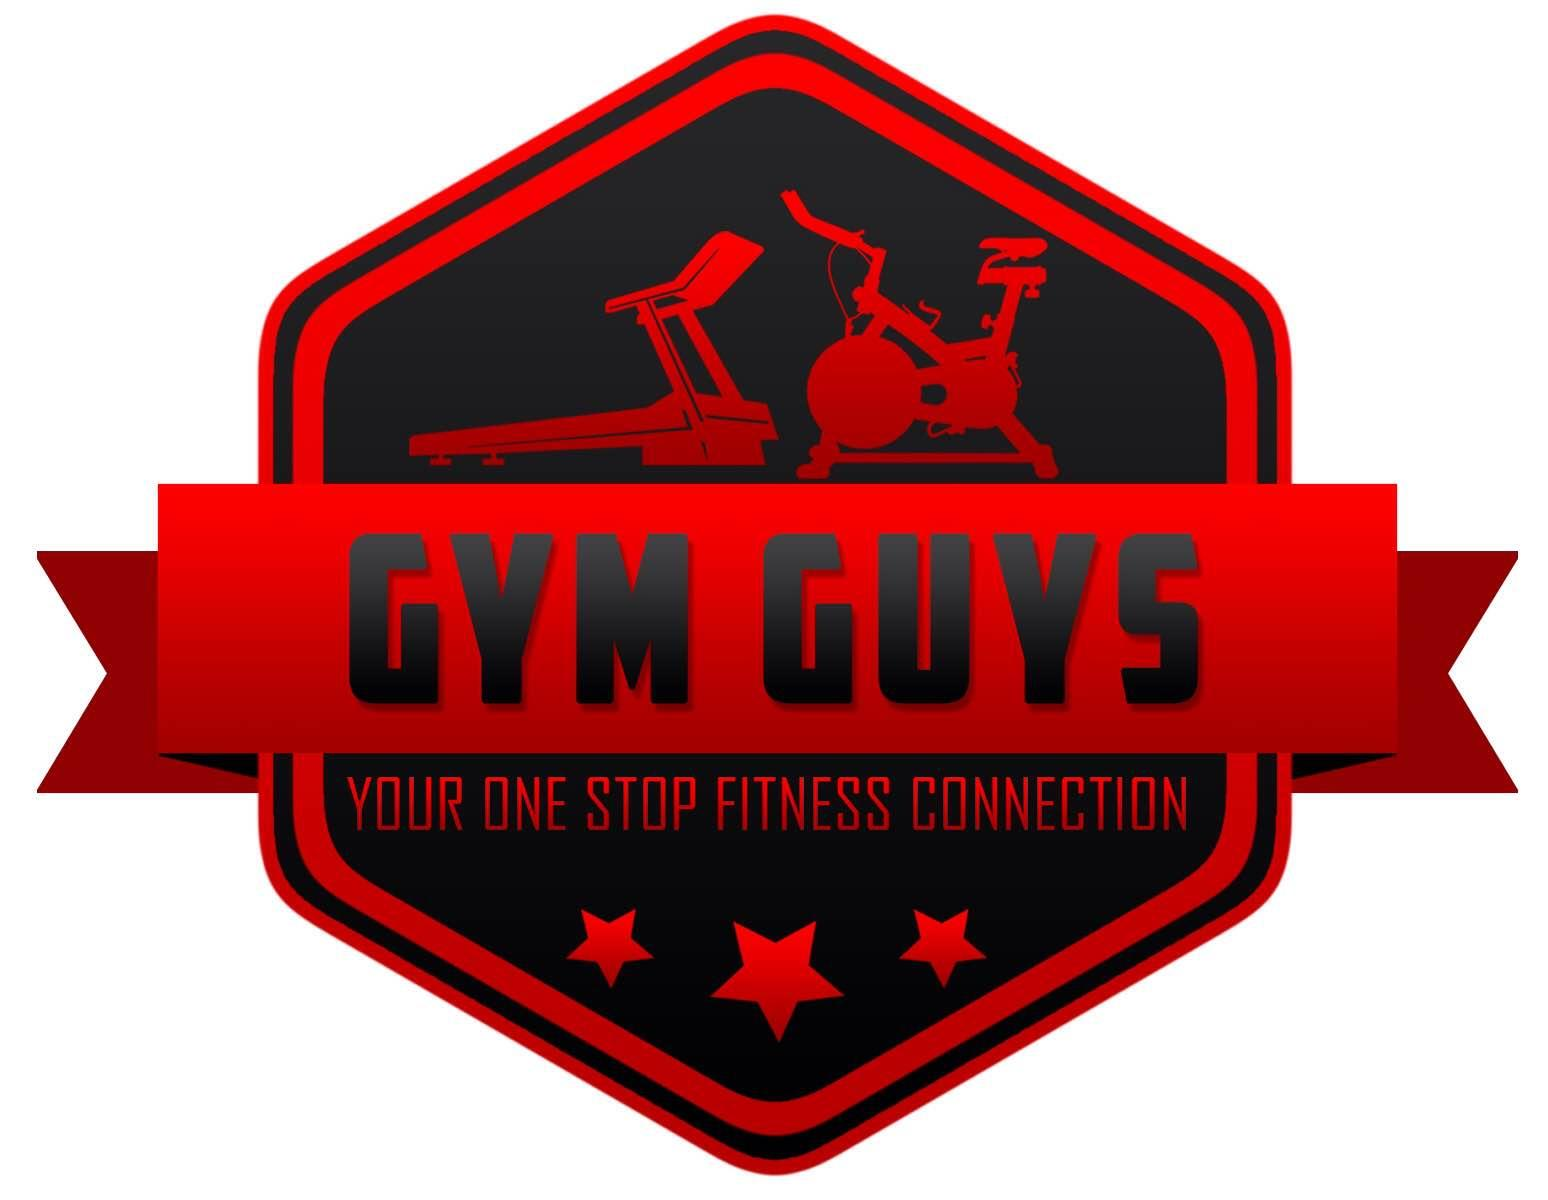 Gym guys llc in johnston ri 02919 for 8 kitchener rd johnston ri